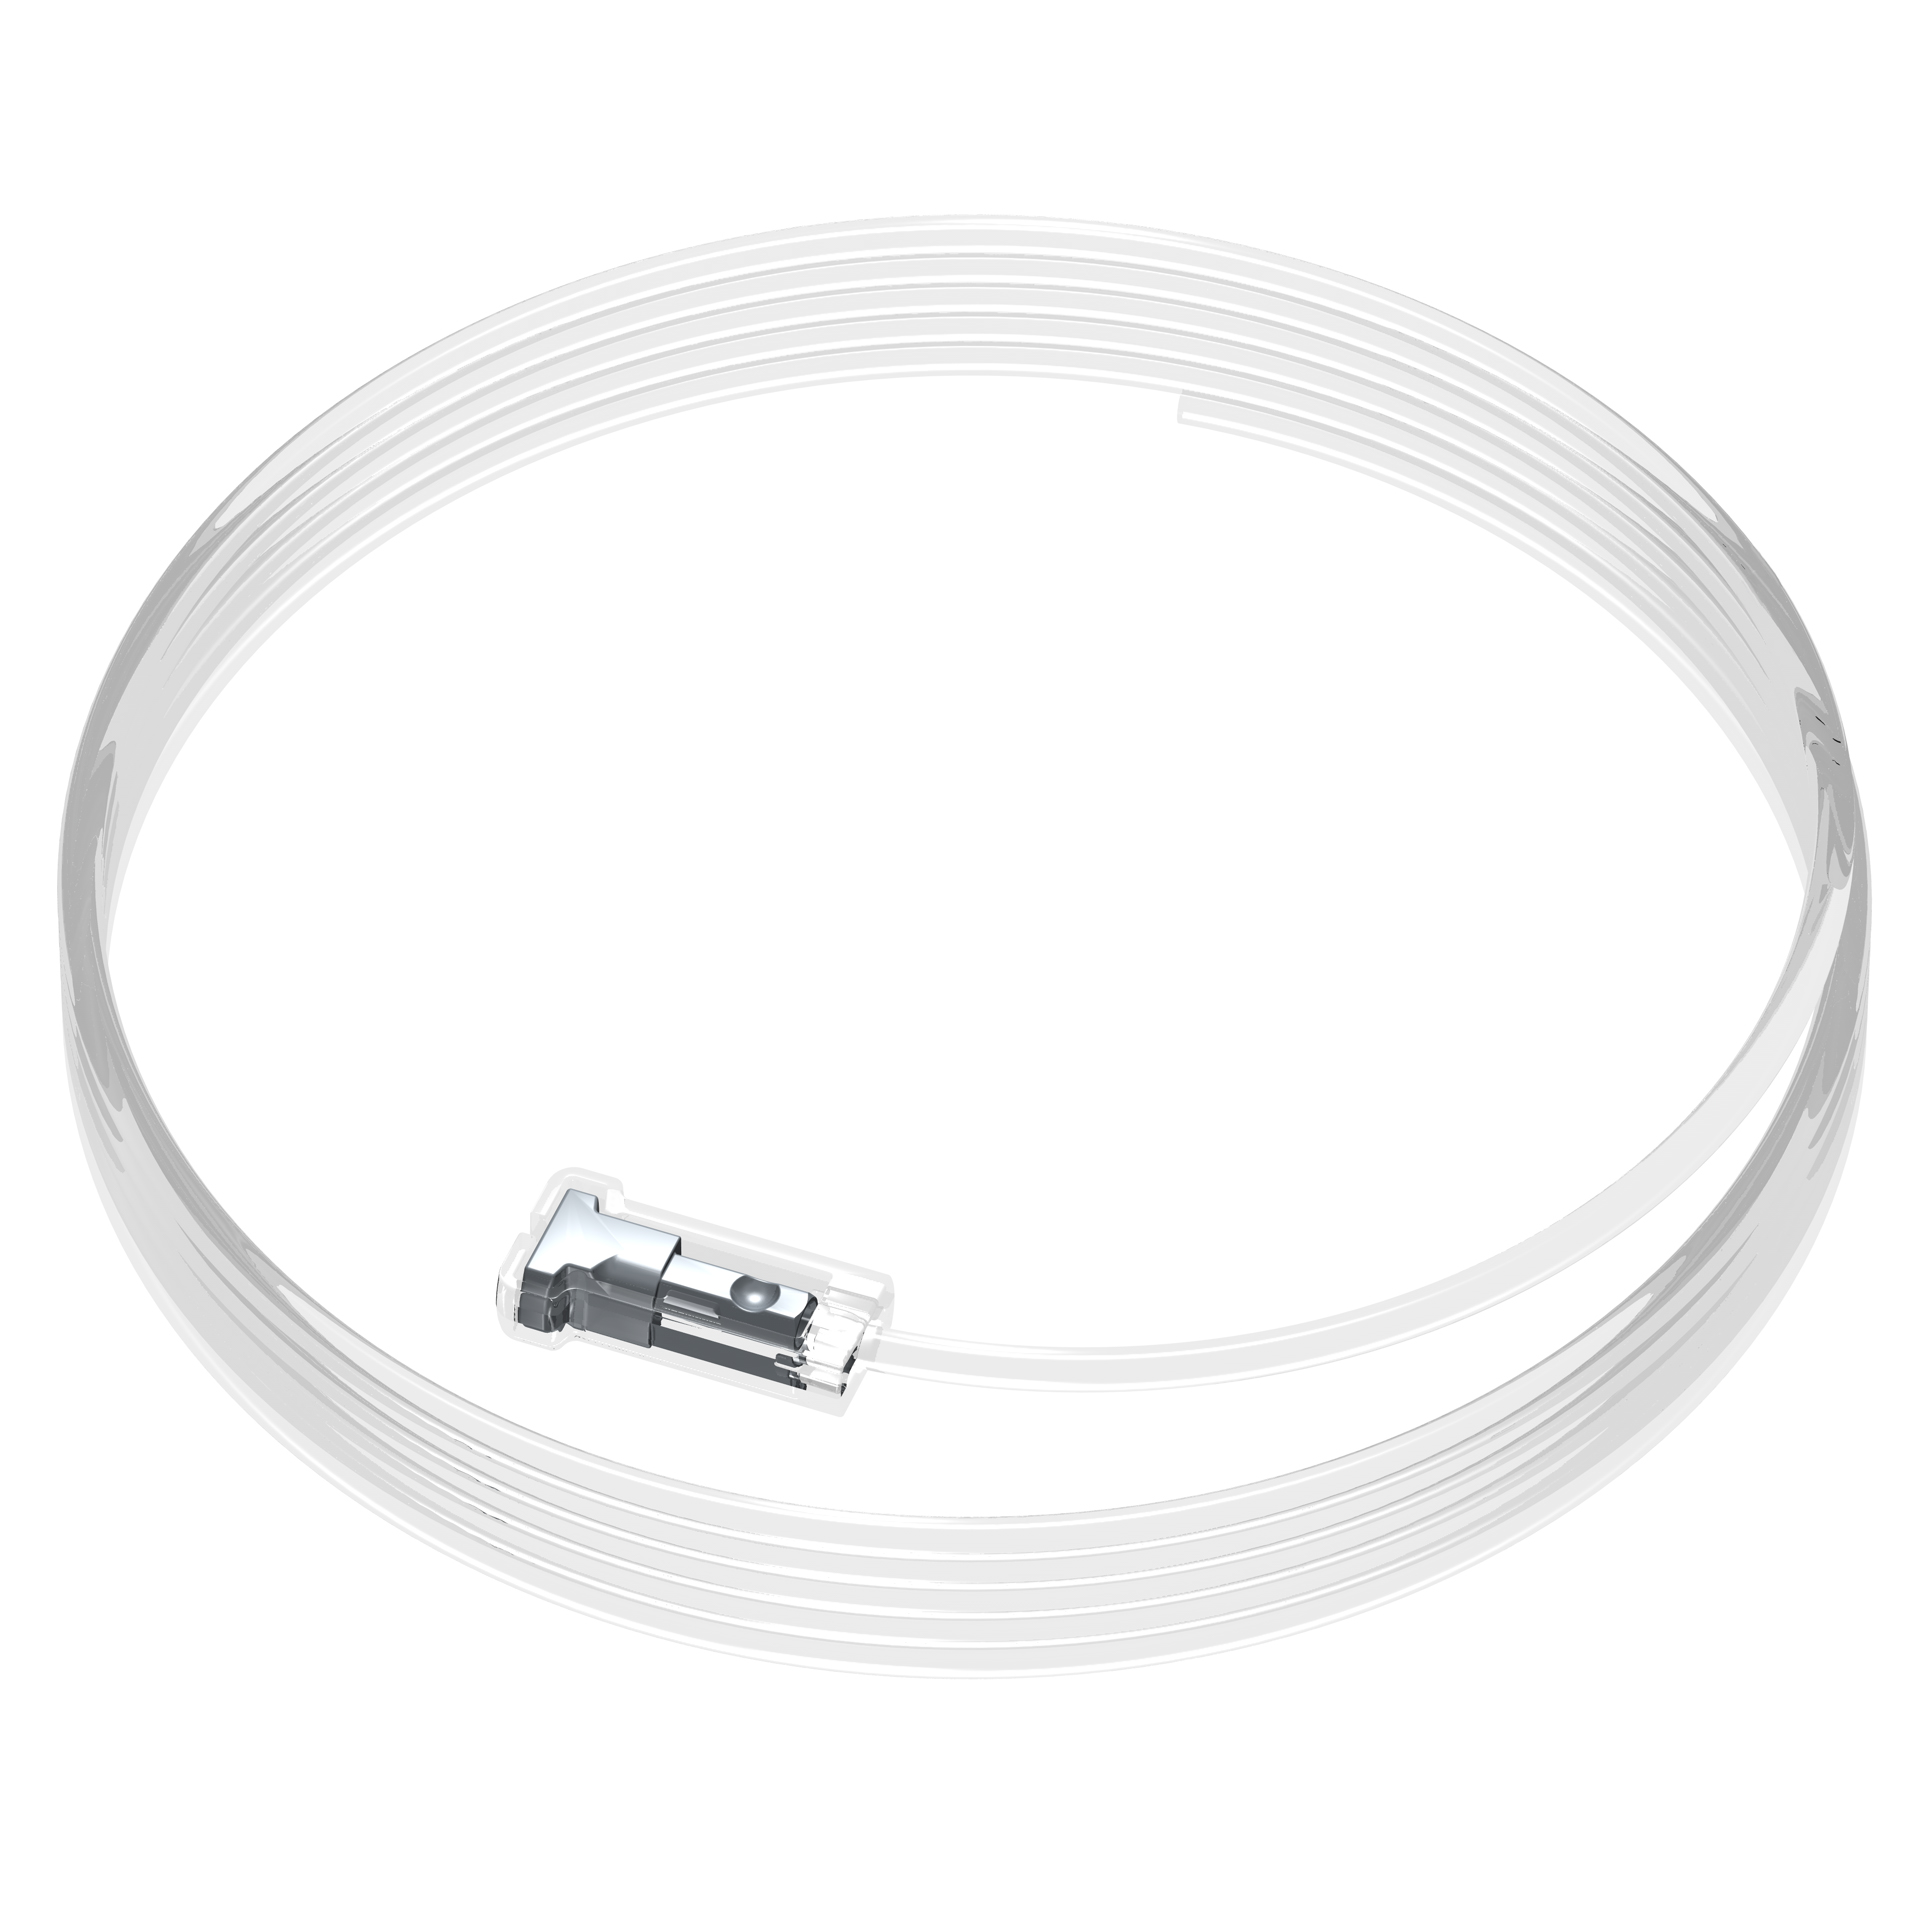 Perlon loop cable